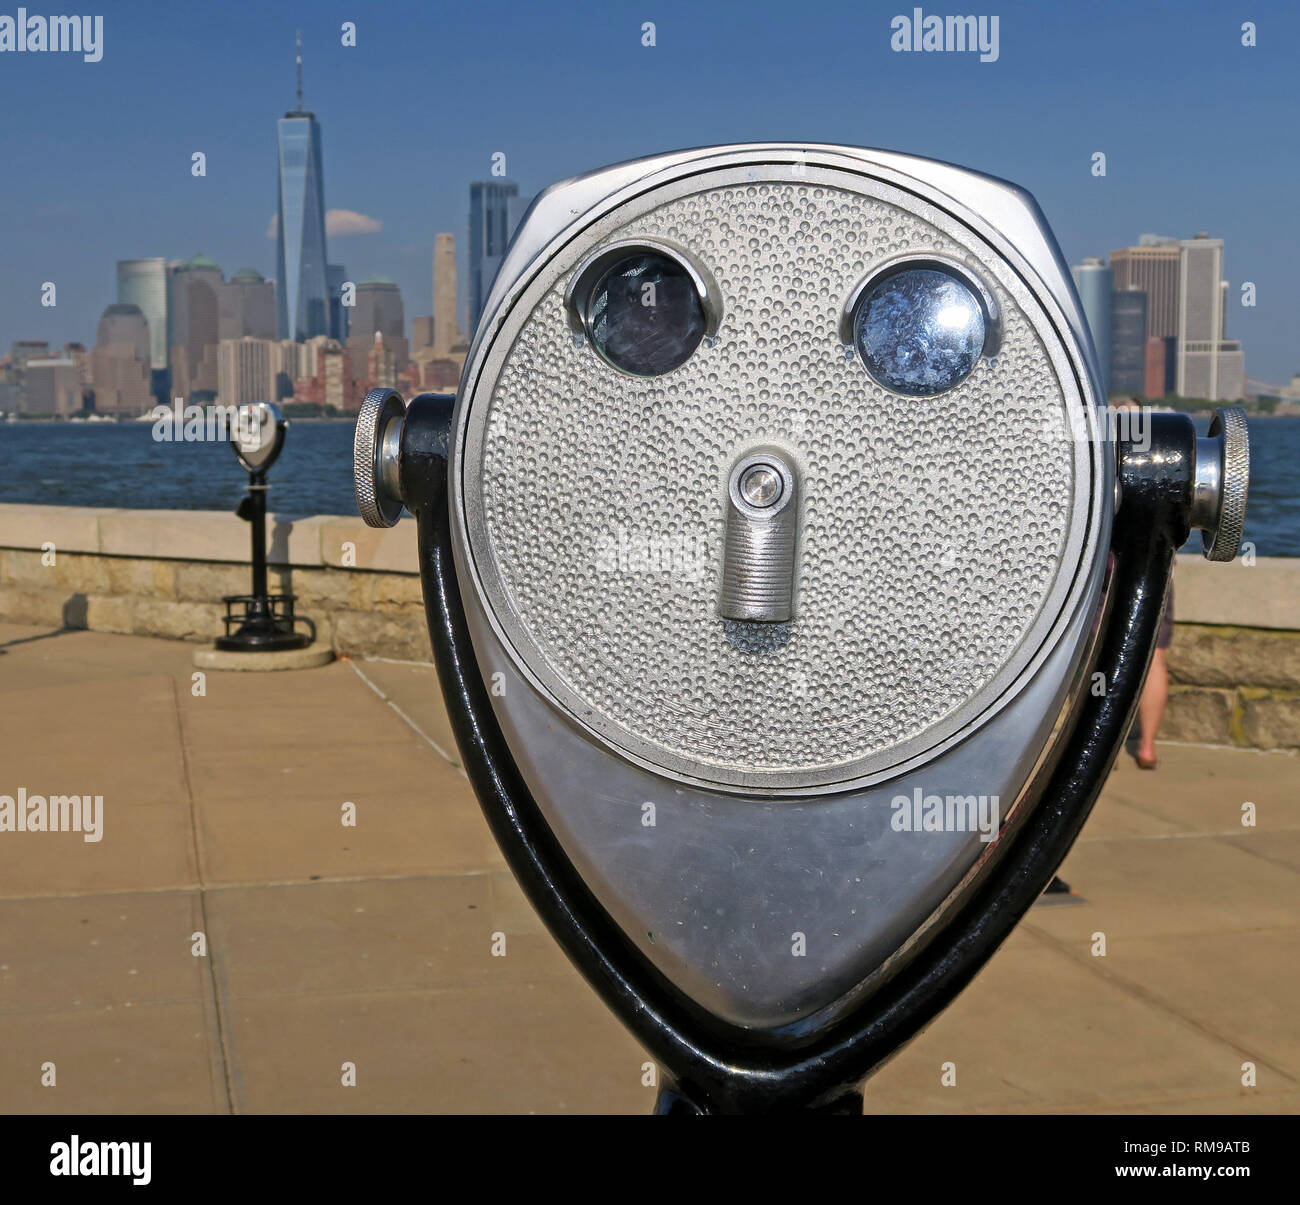 GoTonySmith,HotpixUK,@HotpixUK,Manhatten From Liberty Island,steel,binoculars,classic,vintage,coin,operated,tourist,tourism,pay,harbour,USA,lower Manhattan,United States,America,tourist binoculars,face,tower viewer,mounted on a stalk,mounted on a tower,device,telescope,scenic,lookouts,observation binoculars,observation telescope,observation viewer,revenue,spyglass viewer,spyglasses,stationary,view master,goggle guys,Tower Optical Co,SeeCoast Manufacturing Company